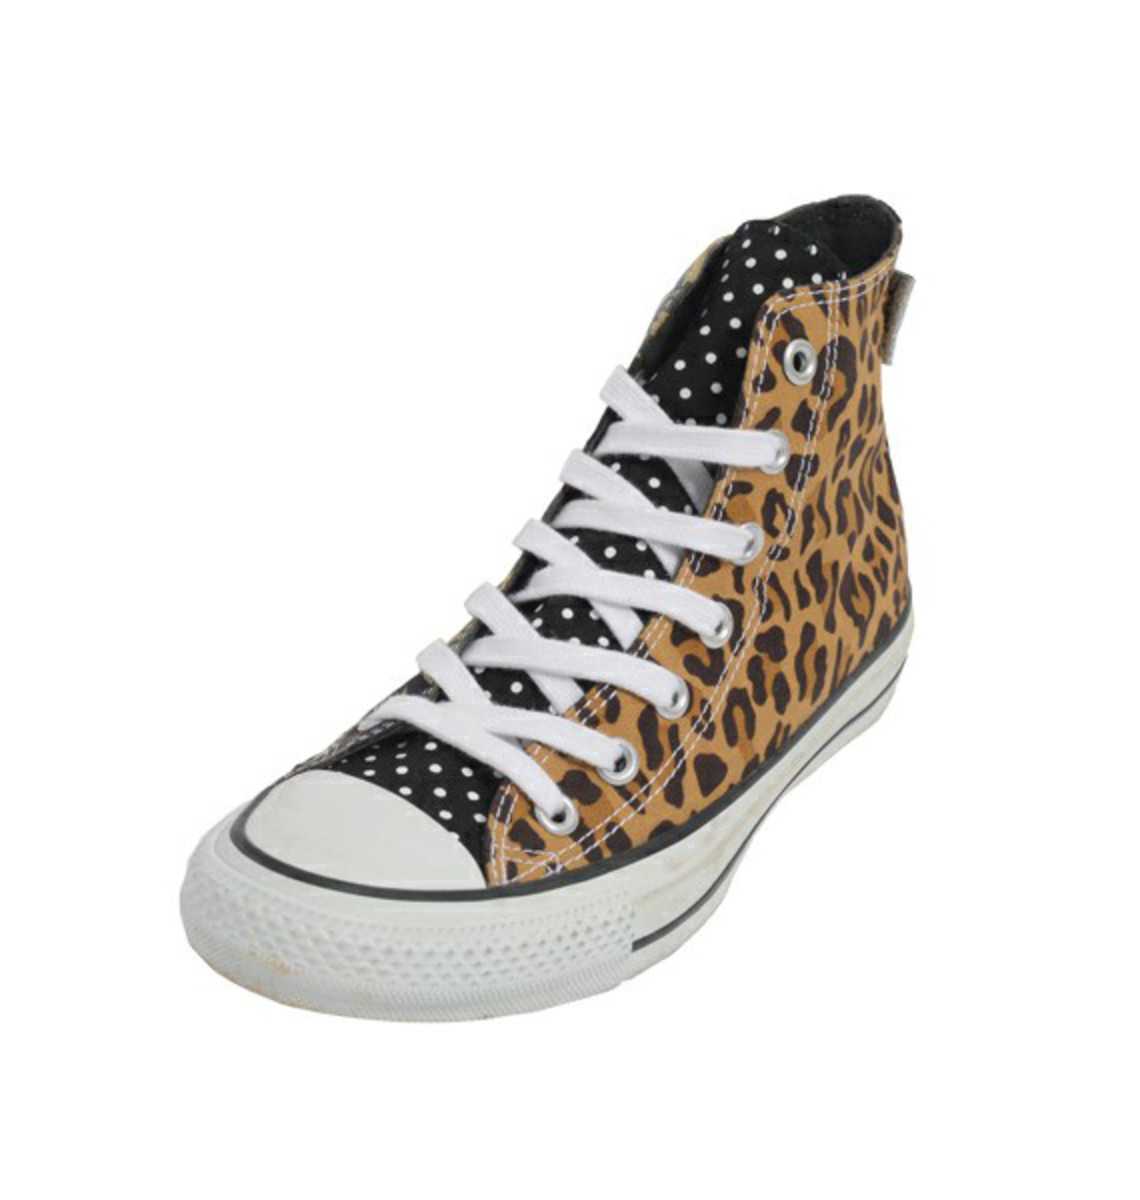 c1e5a5a2c43 Look out for these sneakers at X-girl retailers in Japan such as Calif  online shop.